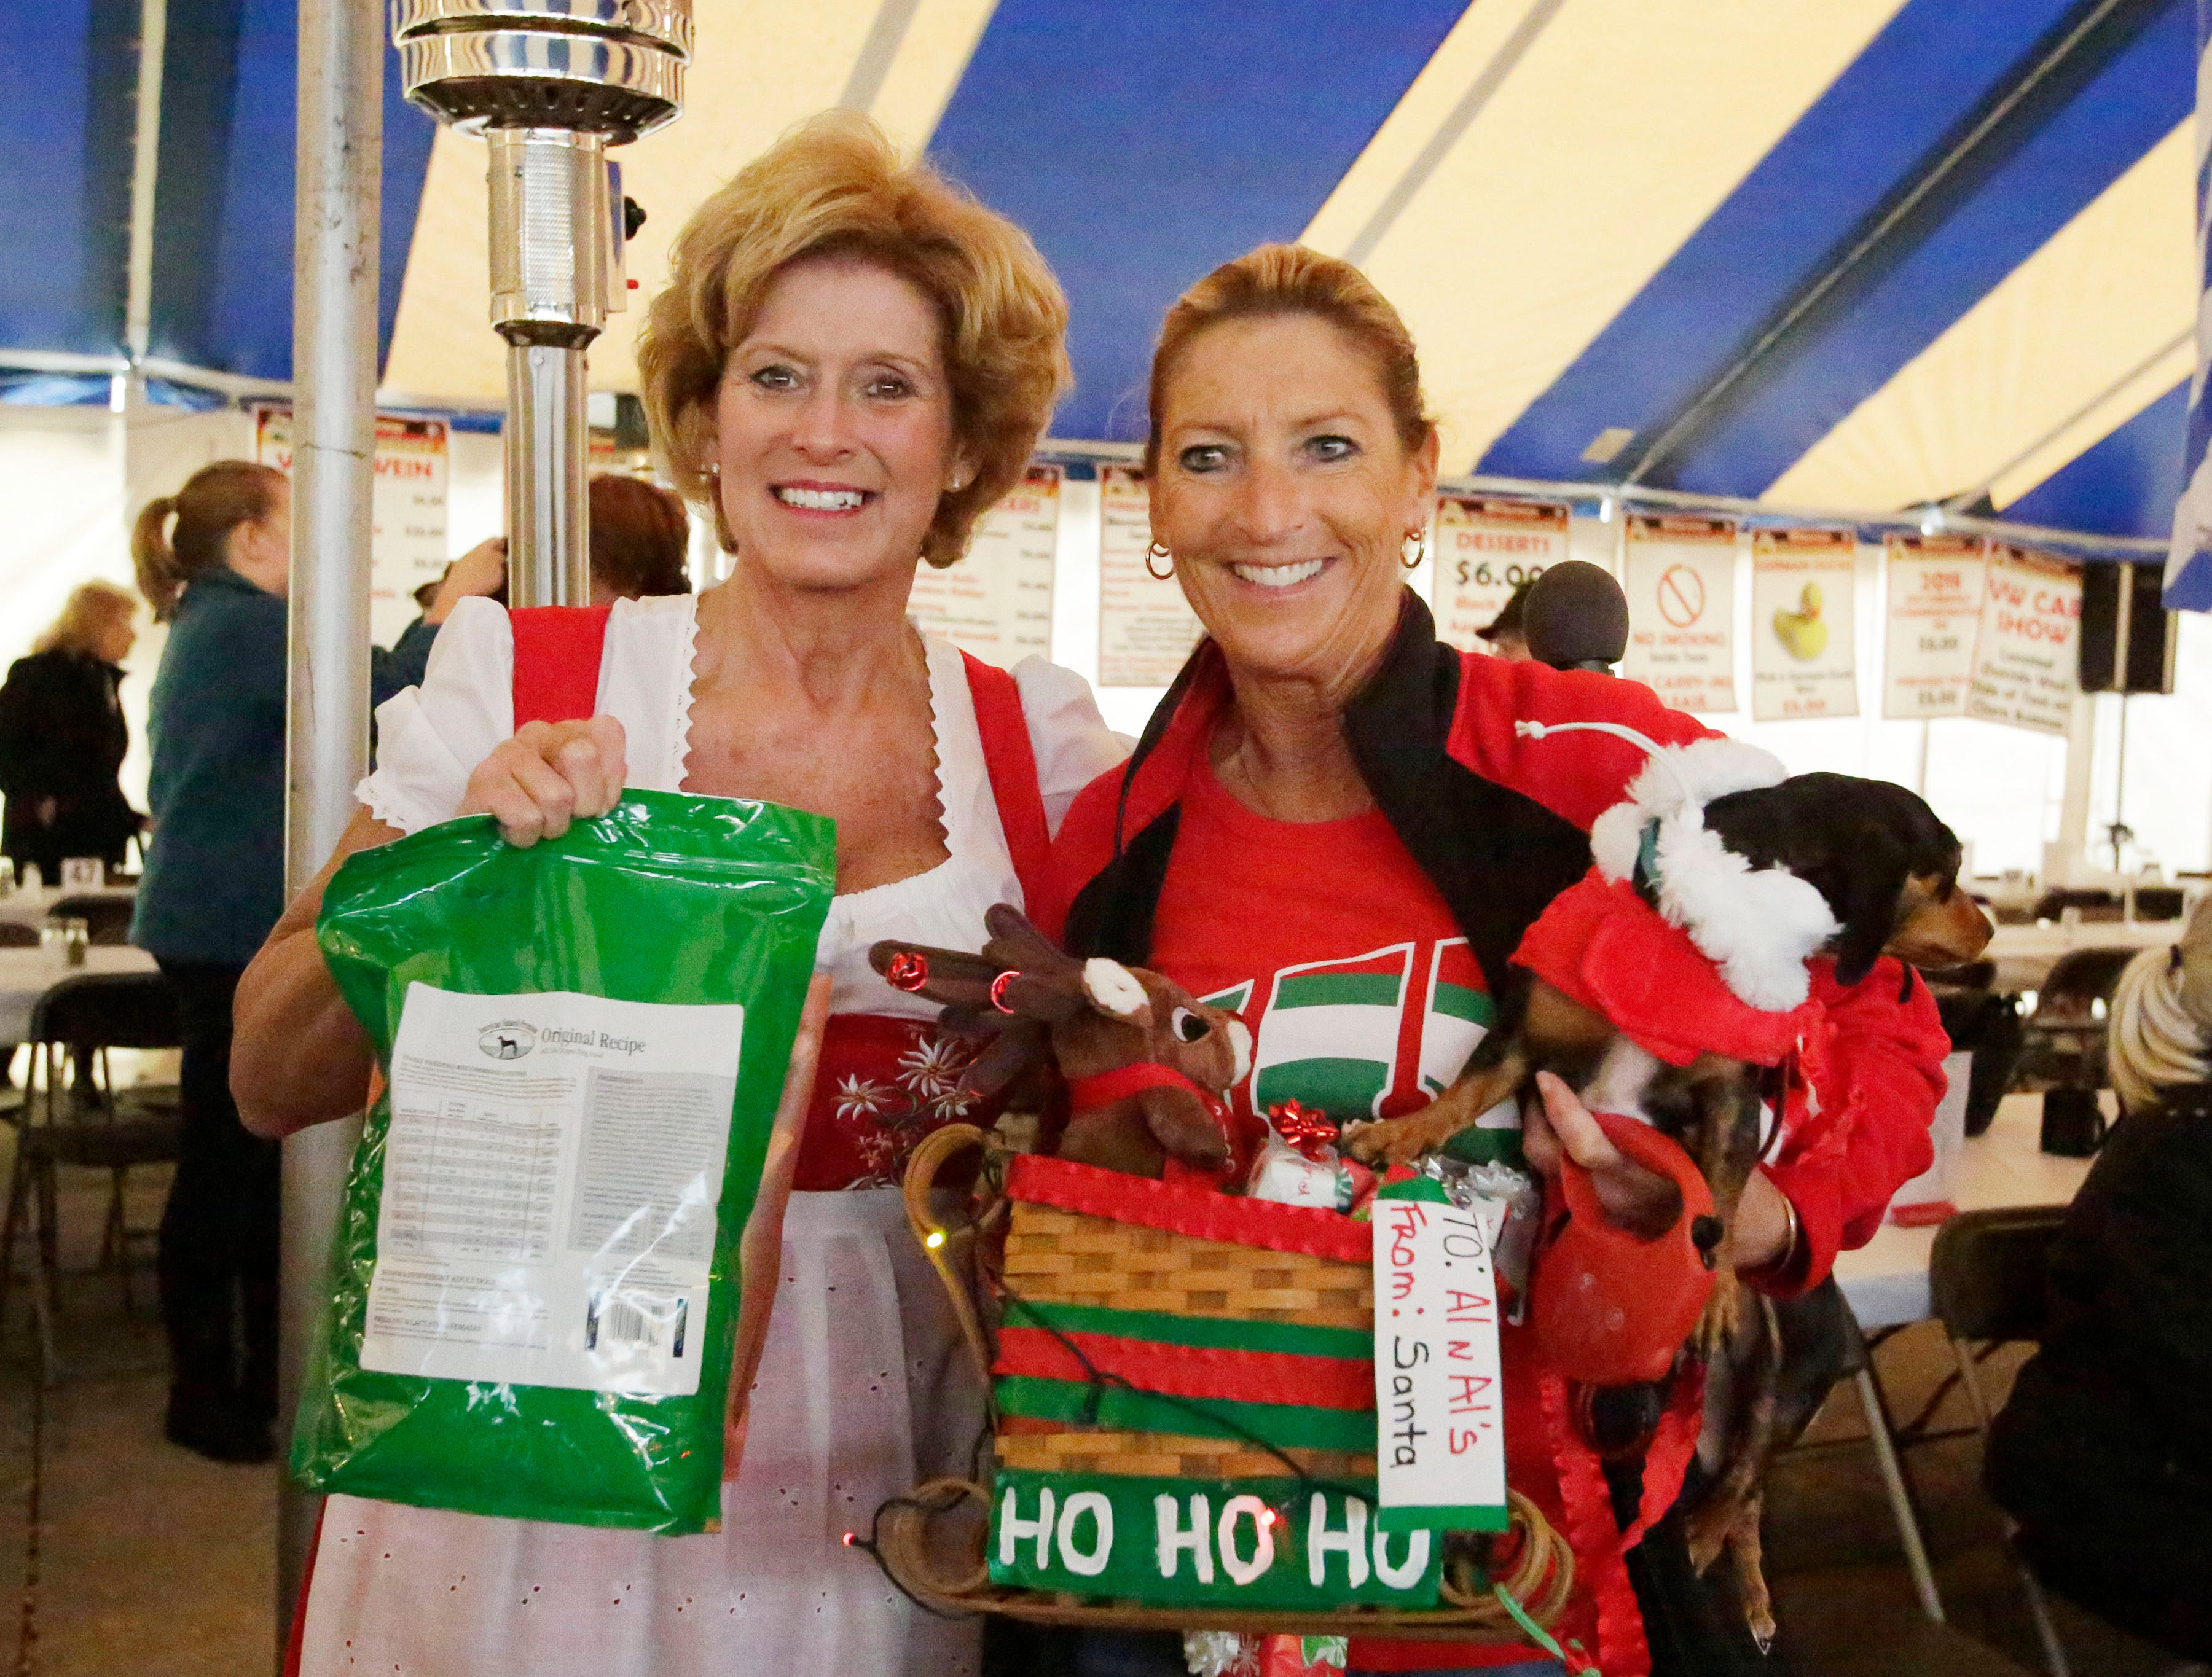 Al and Al's Susie Patterson, left, poses with Janine Blomberg of Sheboygan with her dog Olivia who was decorated as a holiday sled which won in the dog costume contest at Oktoberfest, Saturday October 6, 2018, in Sheboygan, Wis.